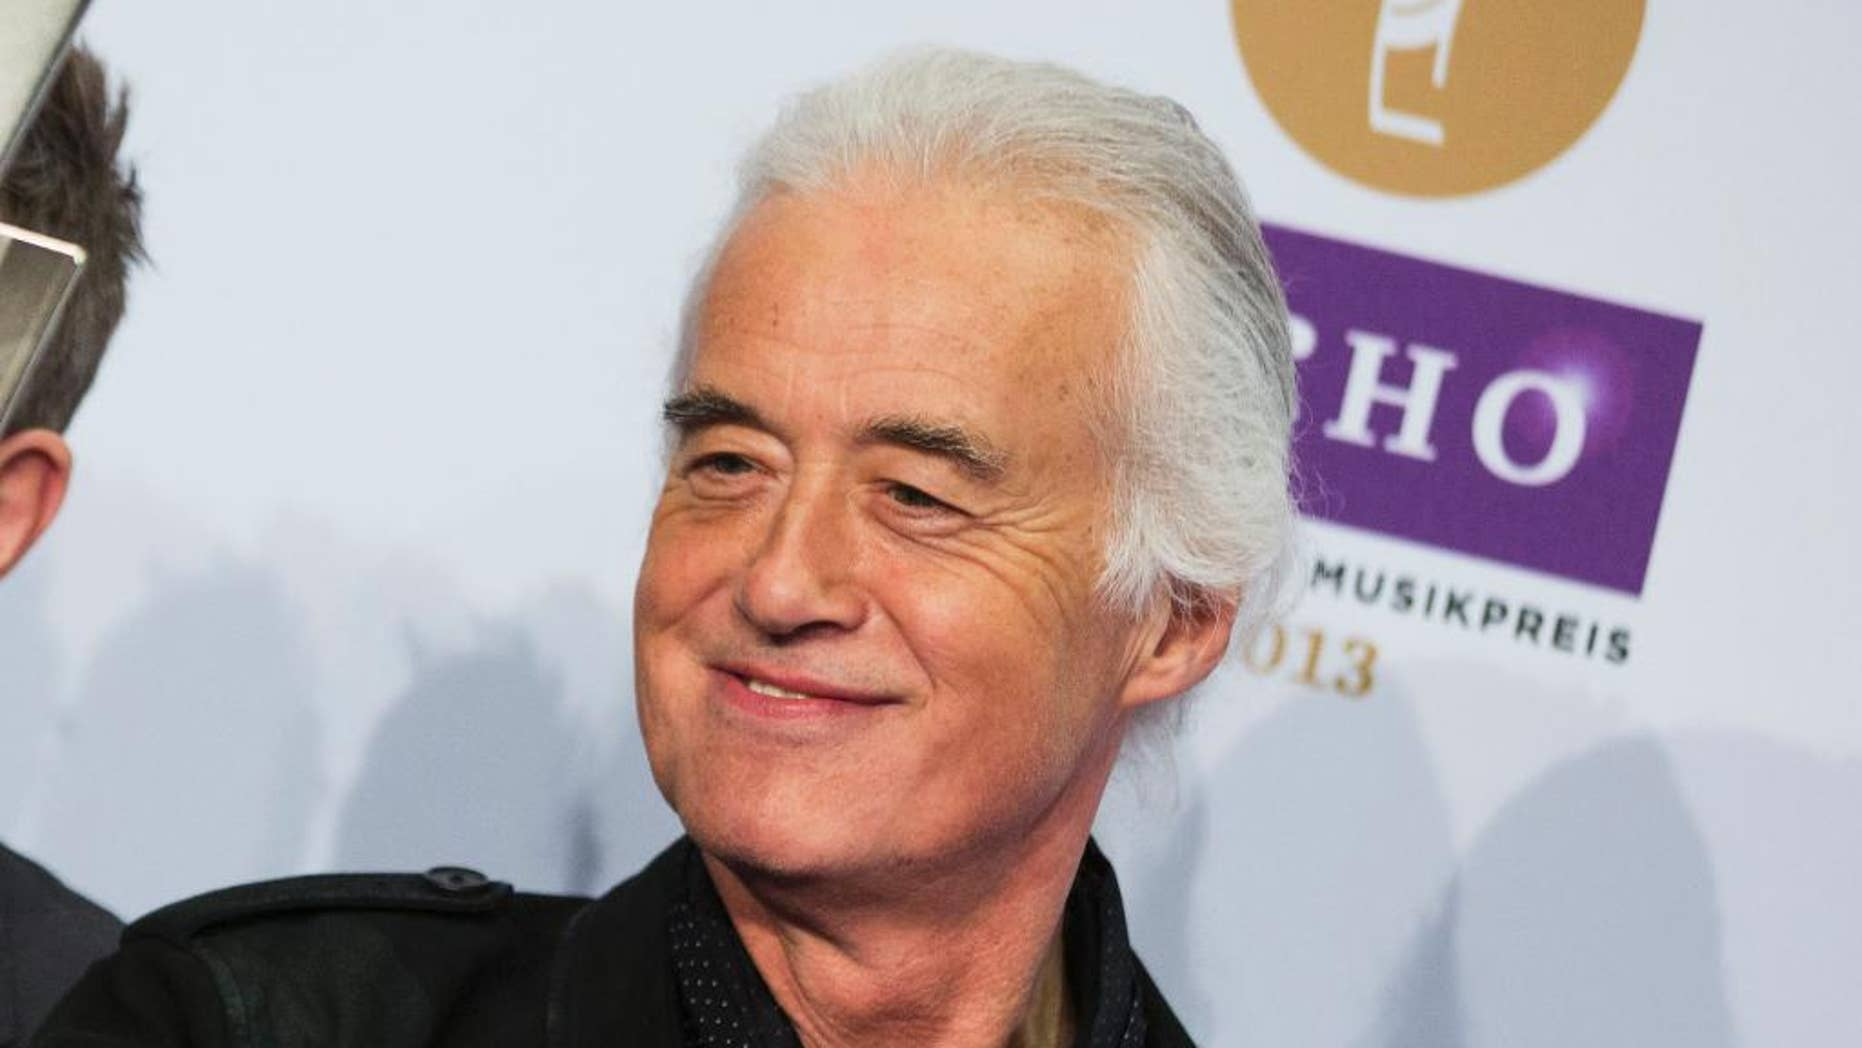 FILE - This March 21, 2013 file photo shows Jimmy Page, of Led Zeppelin,  during the German  Echo music award ceremony in Berlin, Germany. Page has remastered the band's entire catalog. After spending the past couple of years listening to hundreds of hours of the band's music, nine freshly mastered studio albums will be released in chronological order, three at a time. The first set arrives Tuesday, June 3.   (AP Photo/Gero Breloer, File)